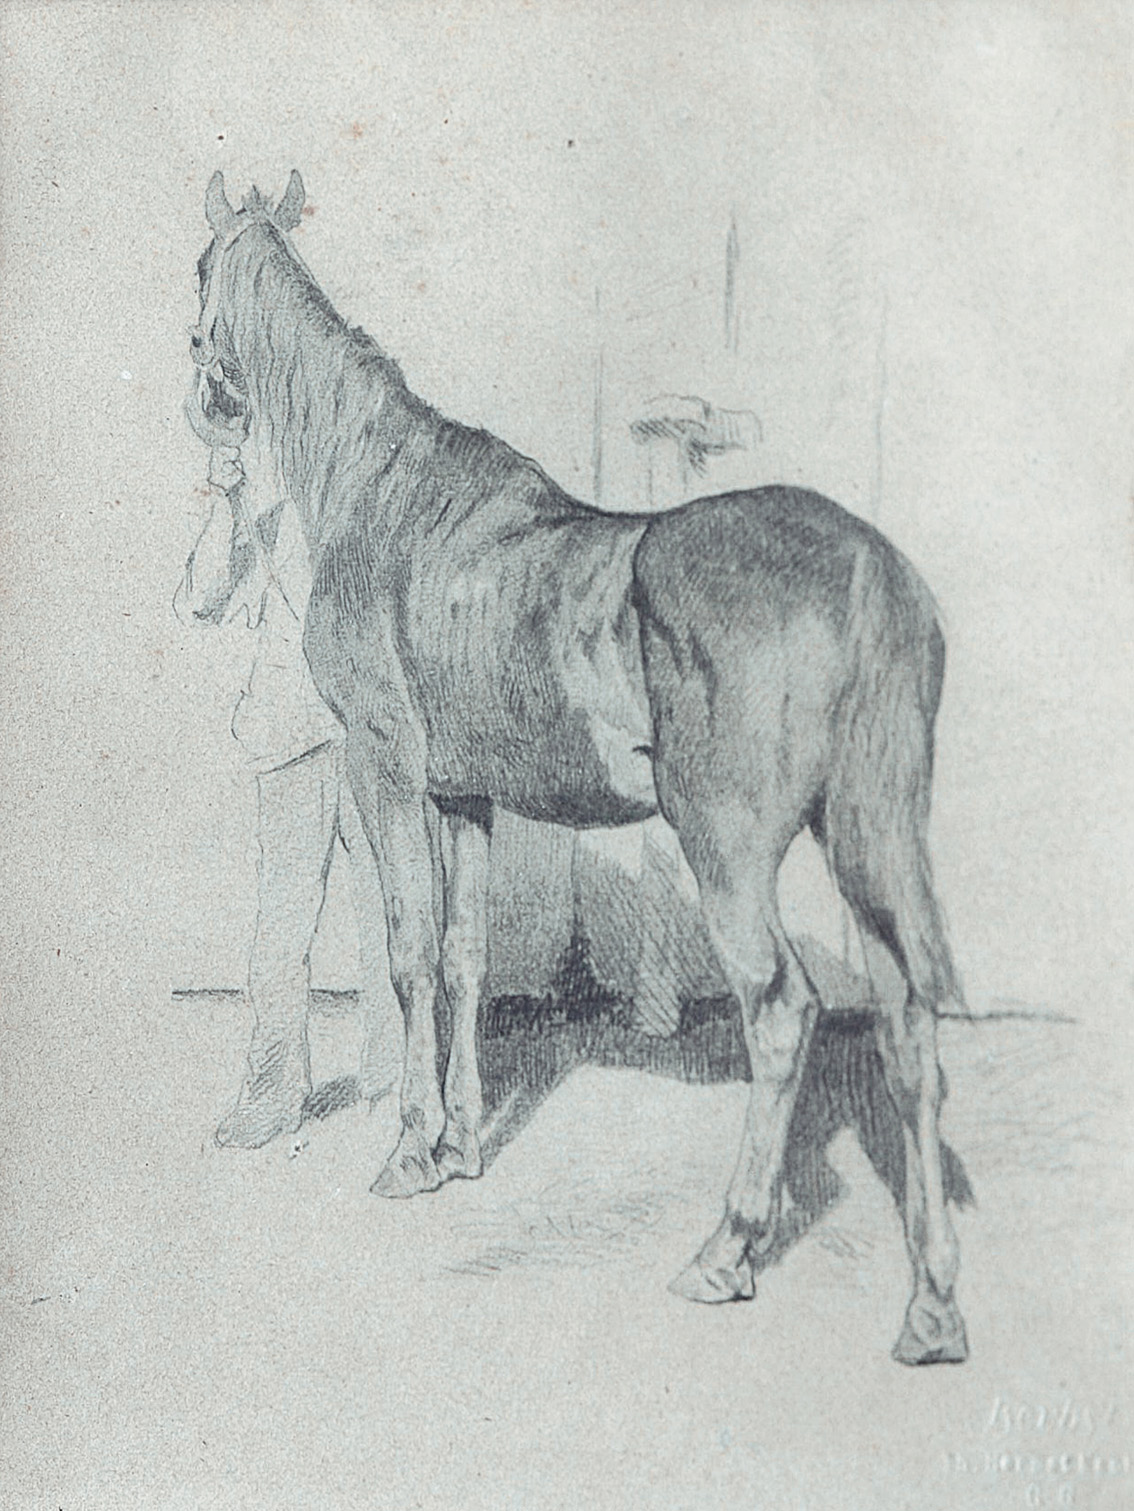 A horse and its owner